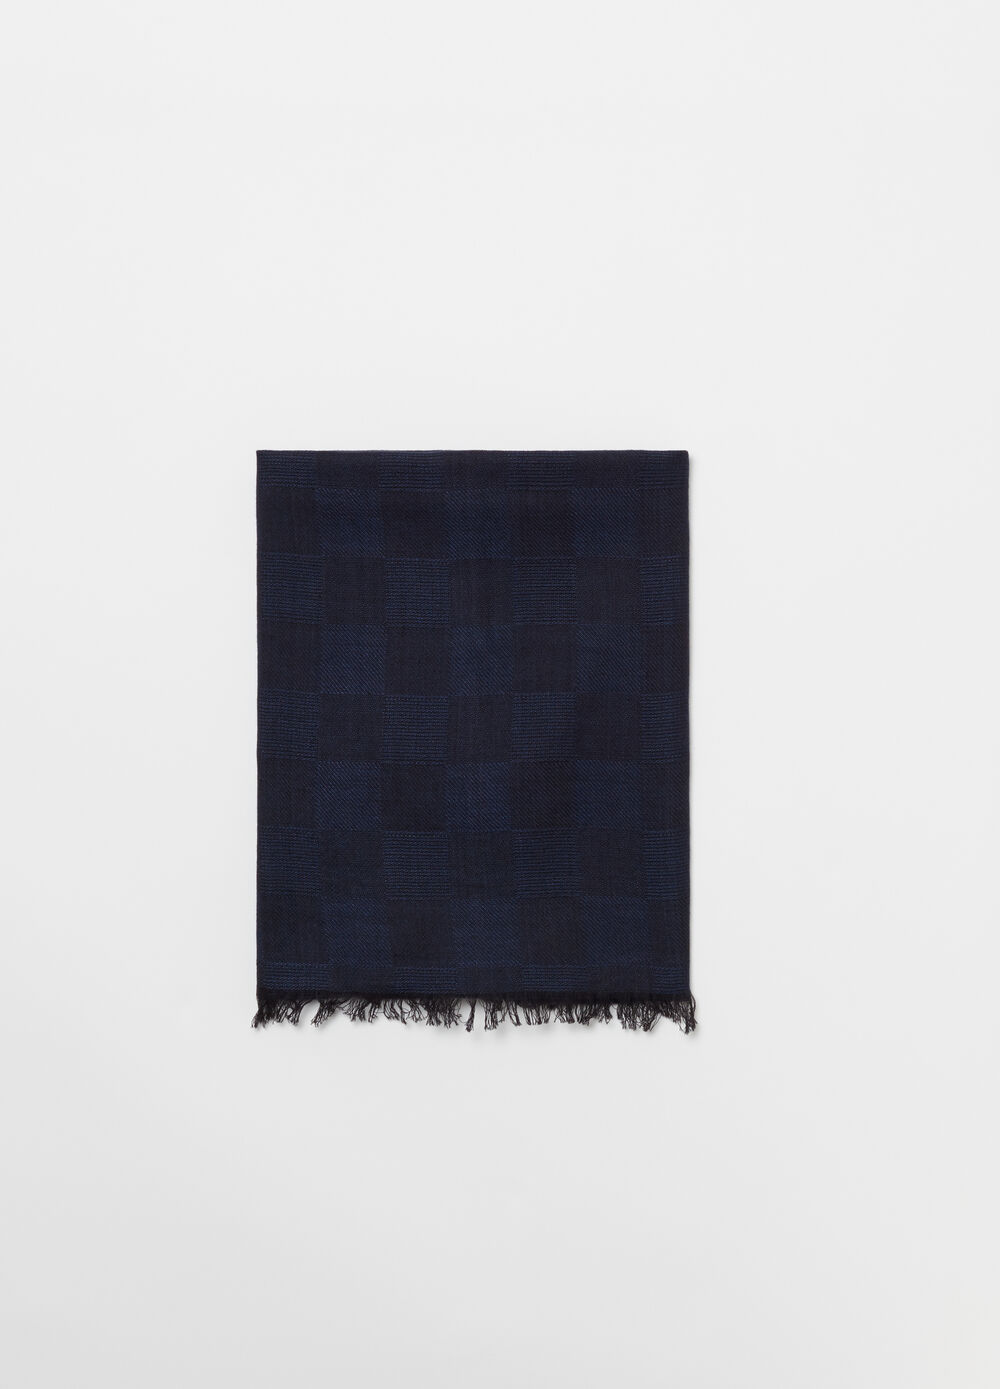 Viscose and cotton scarf with jacquard